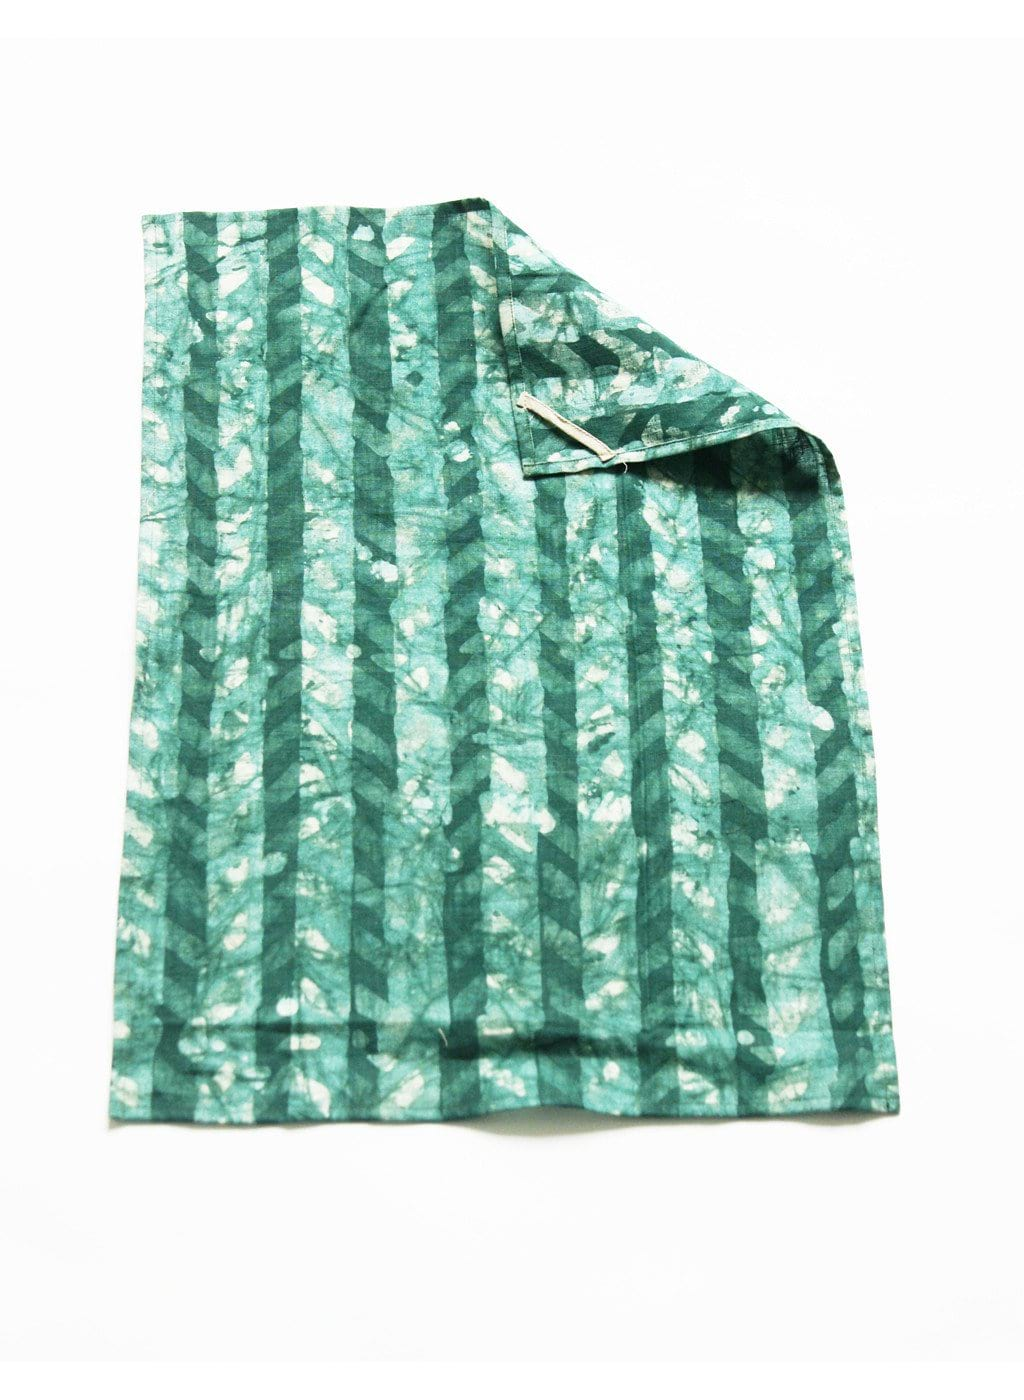 Emerald Green Chevron Linen Kitchen Tea Towel Handprinted Batik